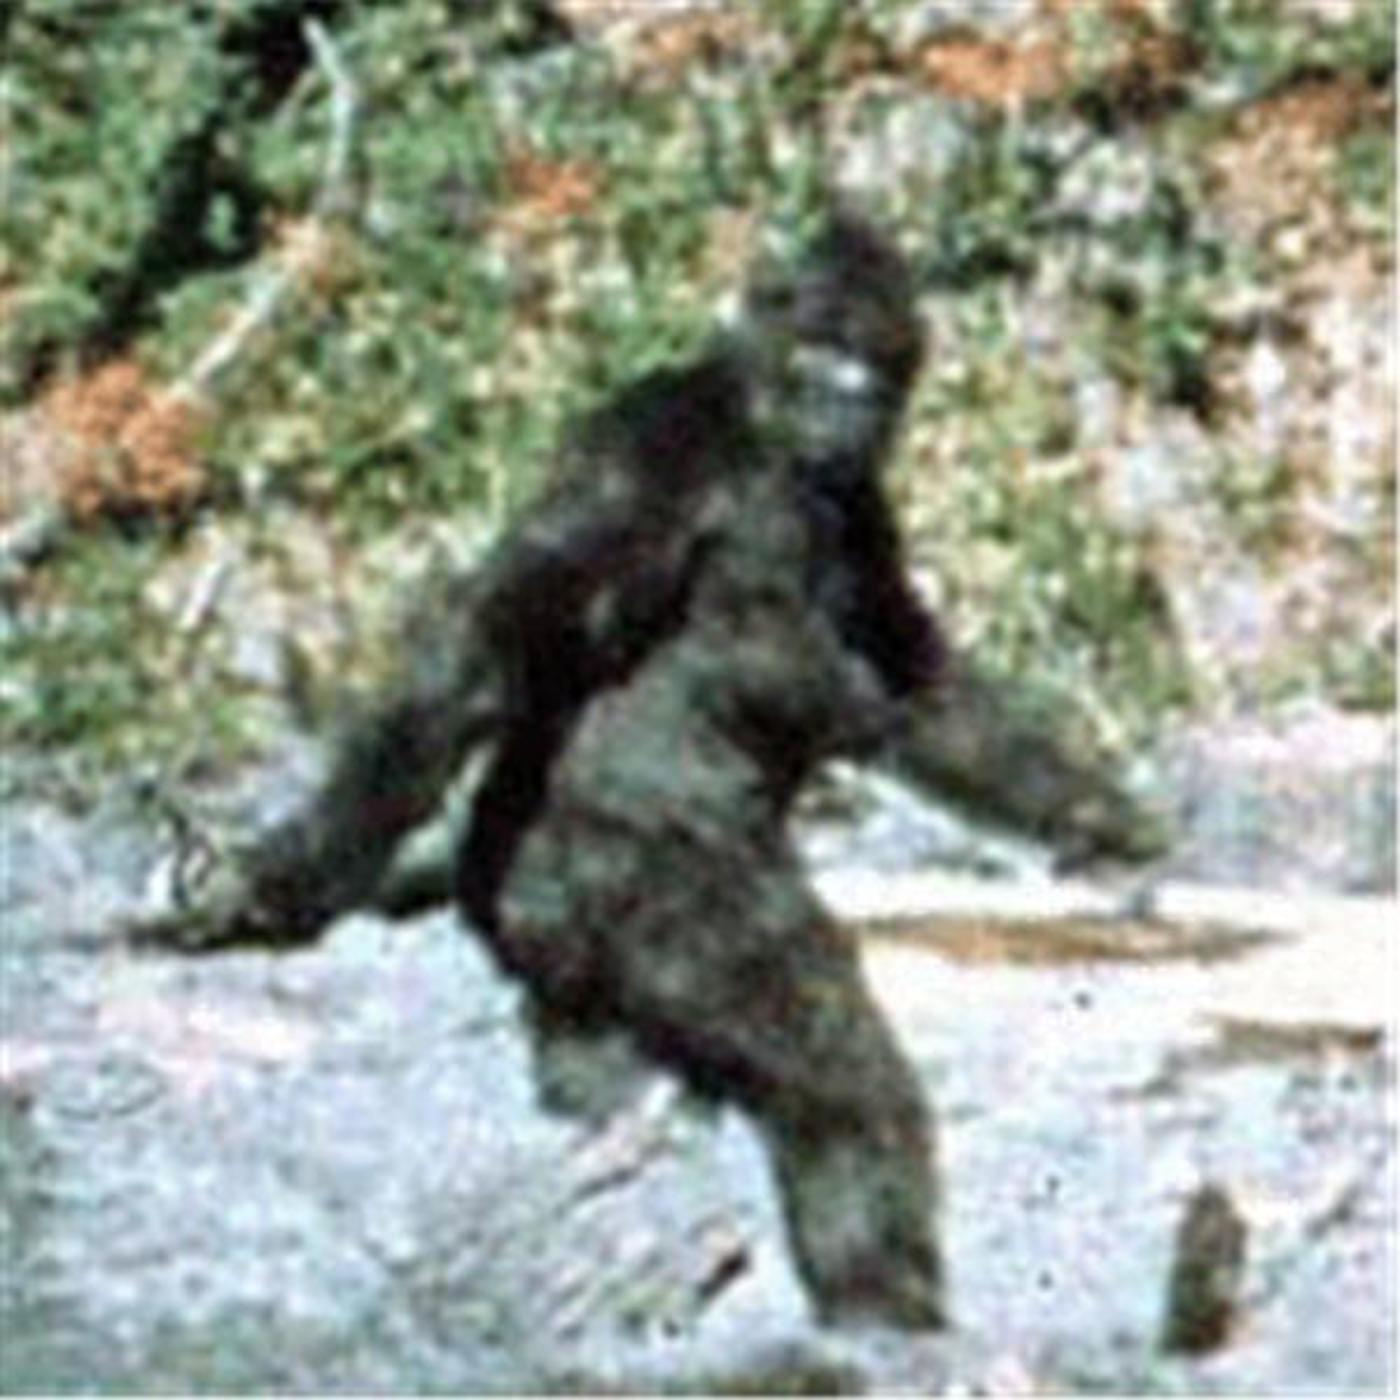 BIGFOOT GROUND ZERO - Dr. Bindernagel Interview